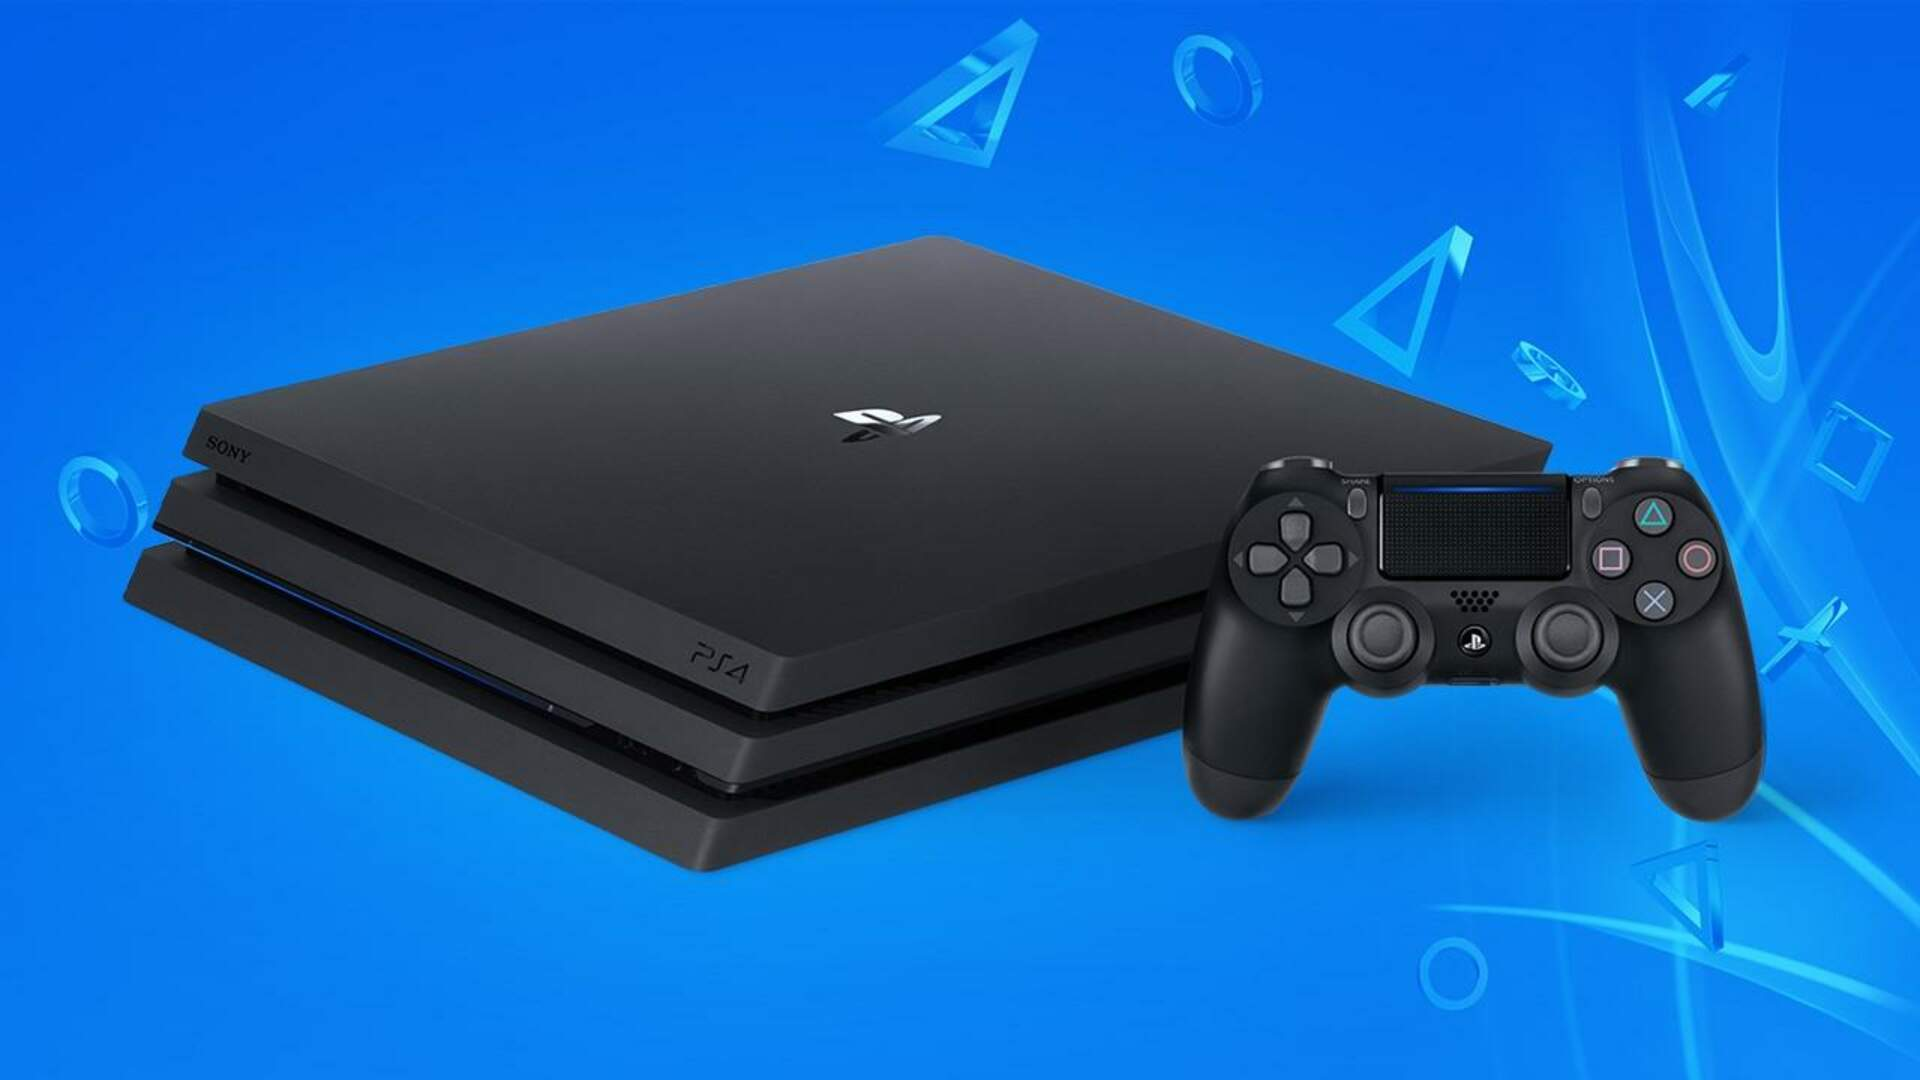 As Sales Slow, PS4 Squeaks Into Second Place on List of All-Time Best Selling Consoles